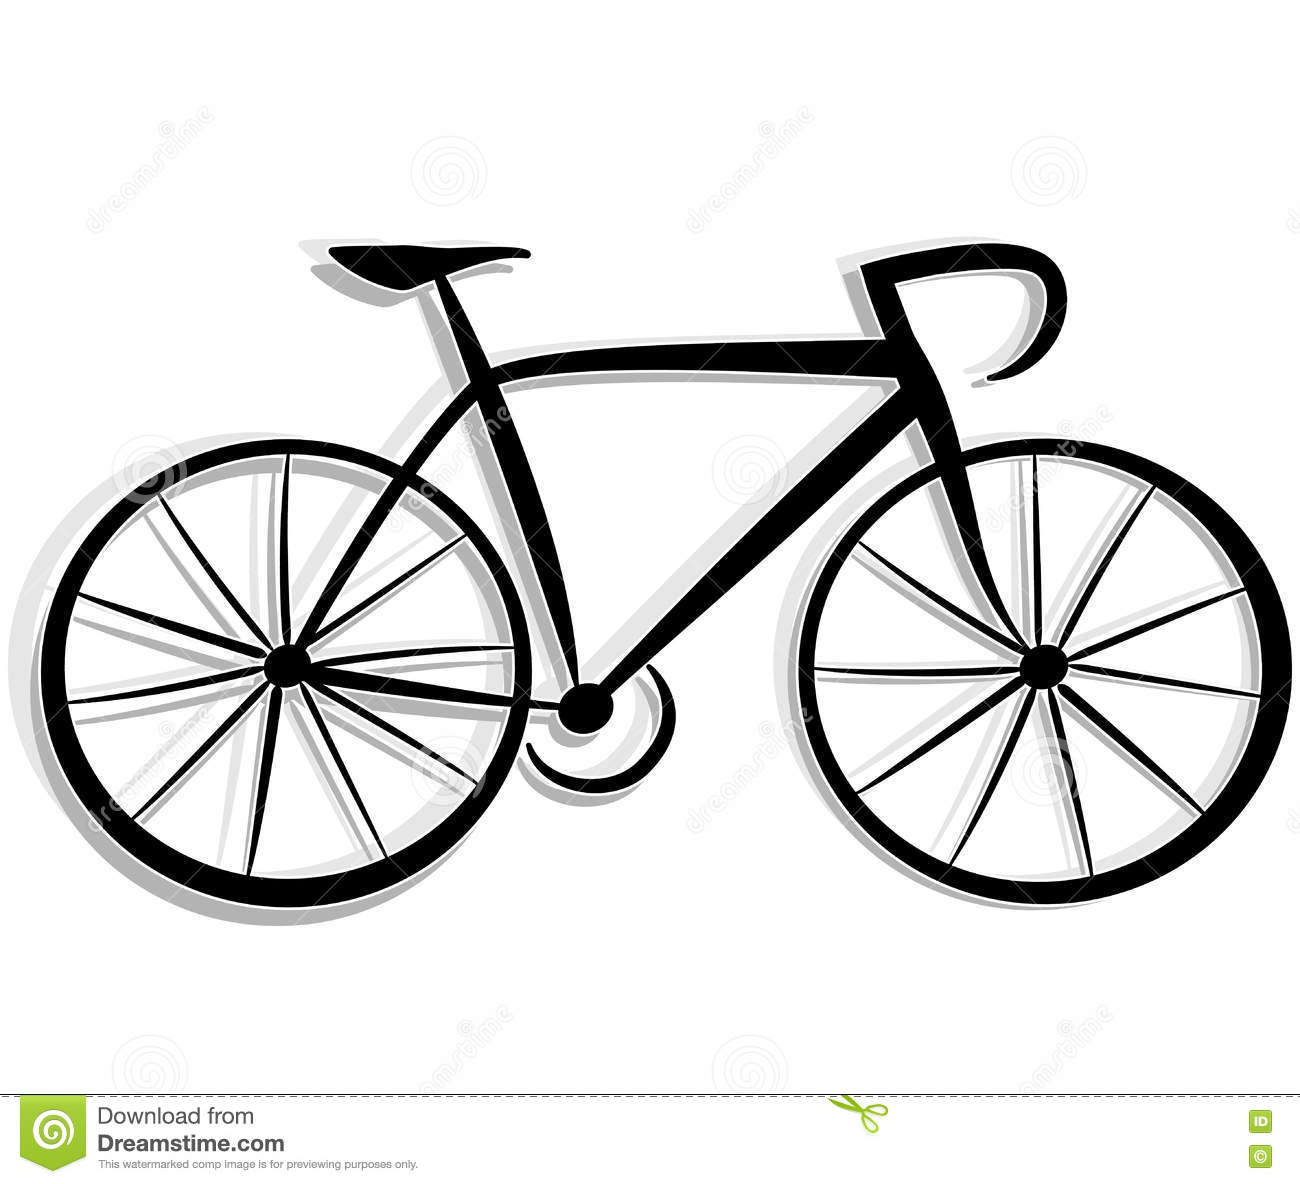 Dessin de bicyclette illustration de vecteur illustration - Bicyclette dessin ...